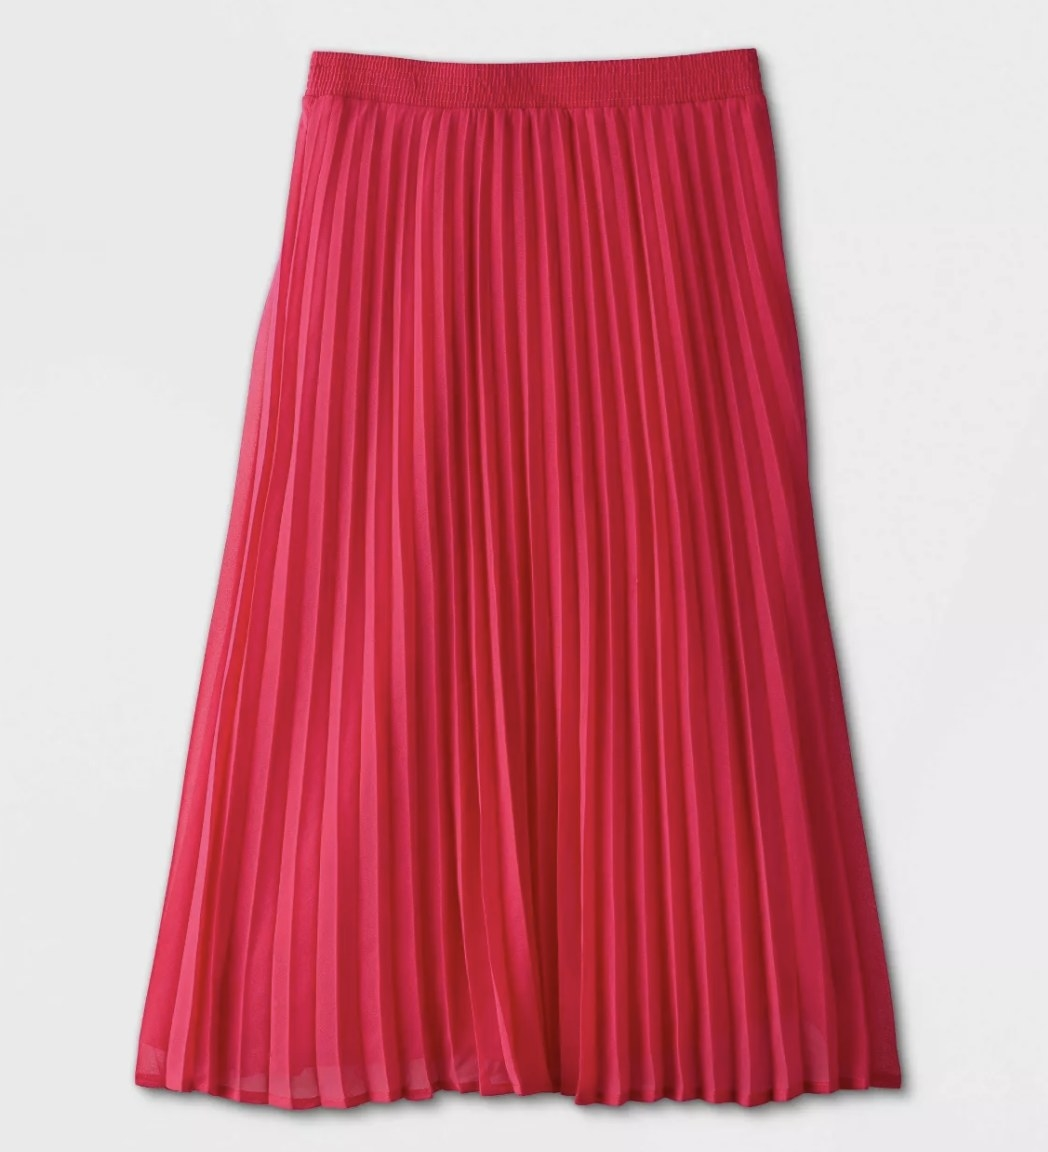 A pink pleated skirt